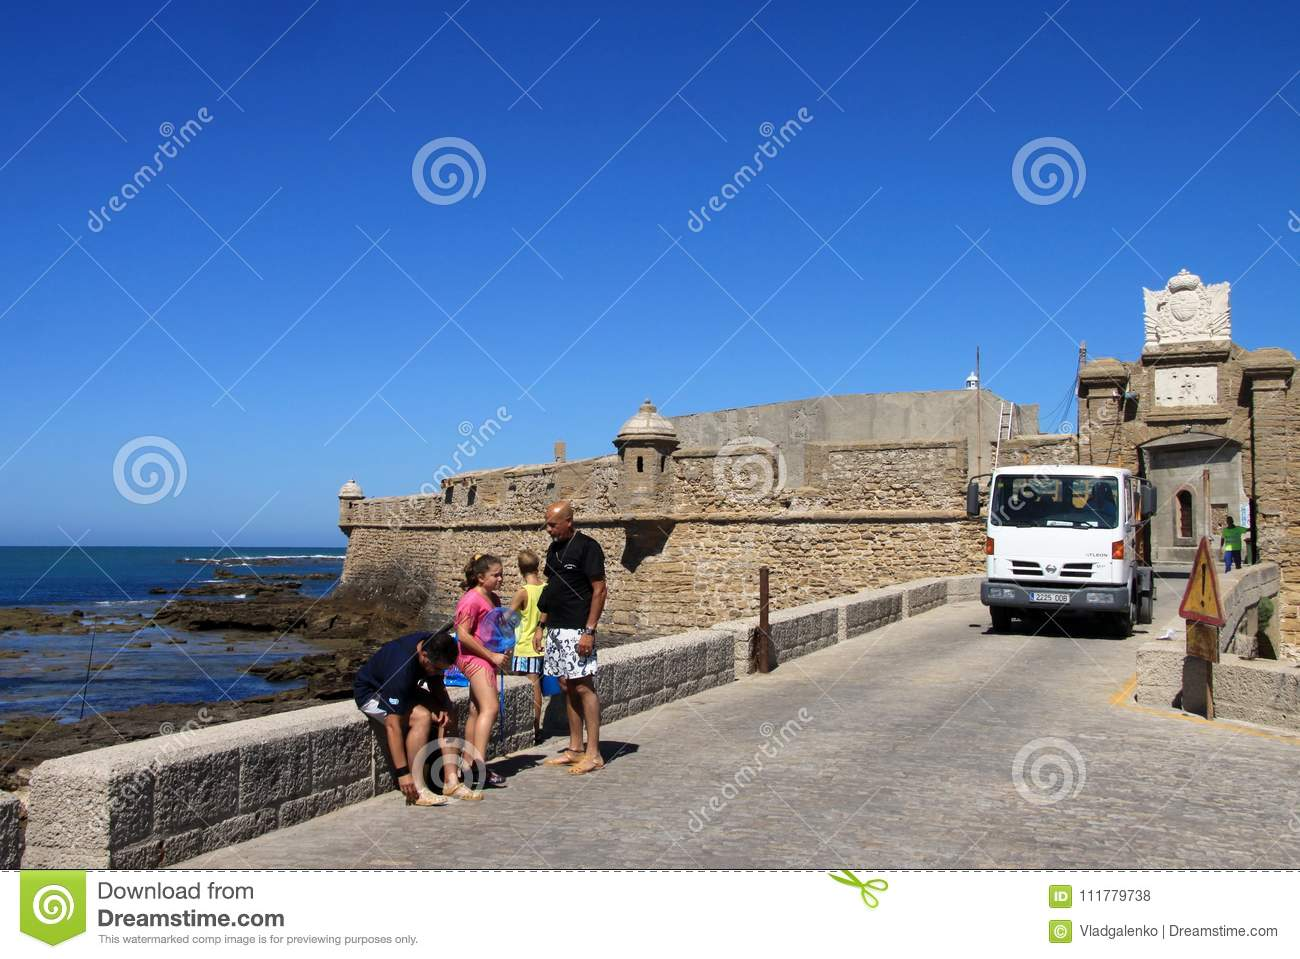 Fortress of San Sebastian on the shores of the ancient maritime city of Cadiz.